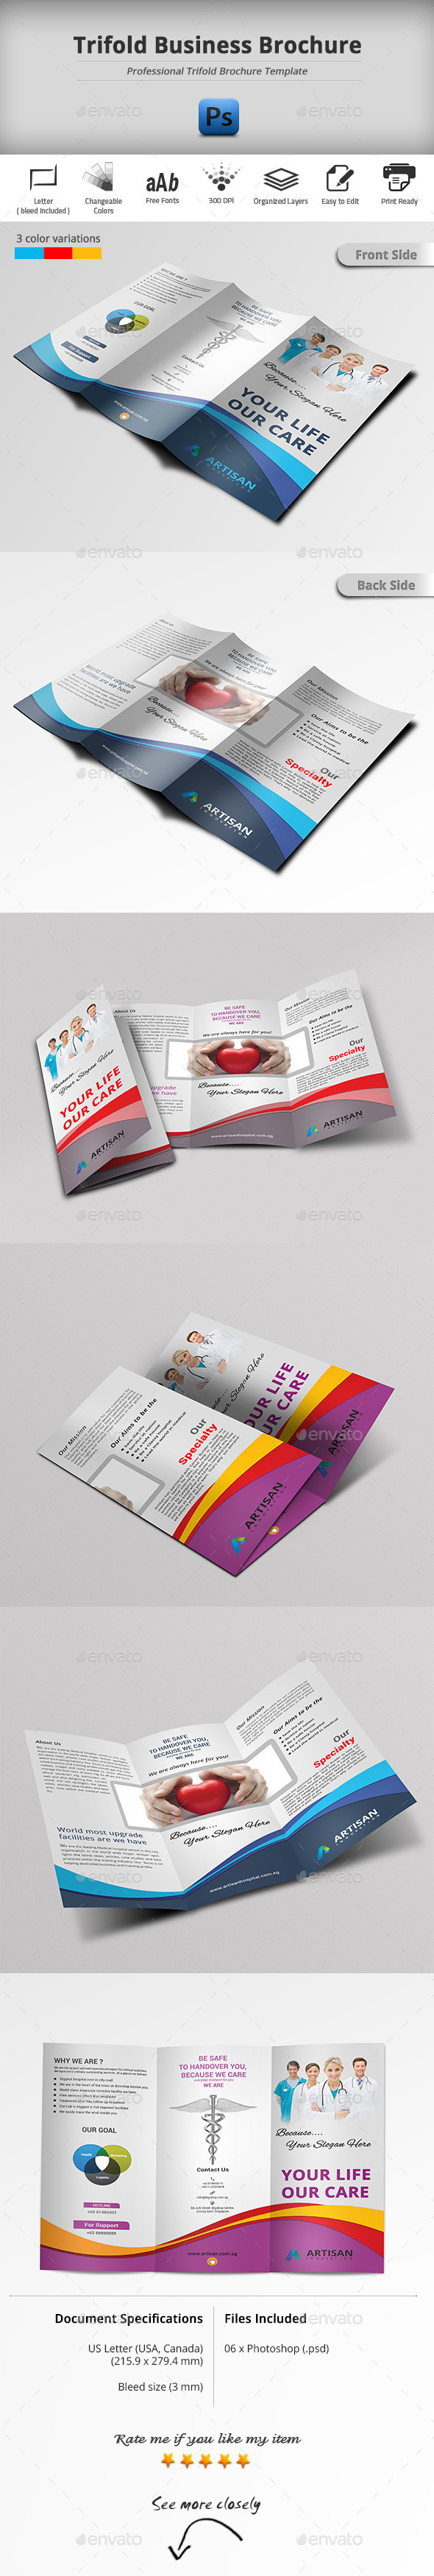 GraphicRiver Trifold Business Brochure 11041136